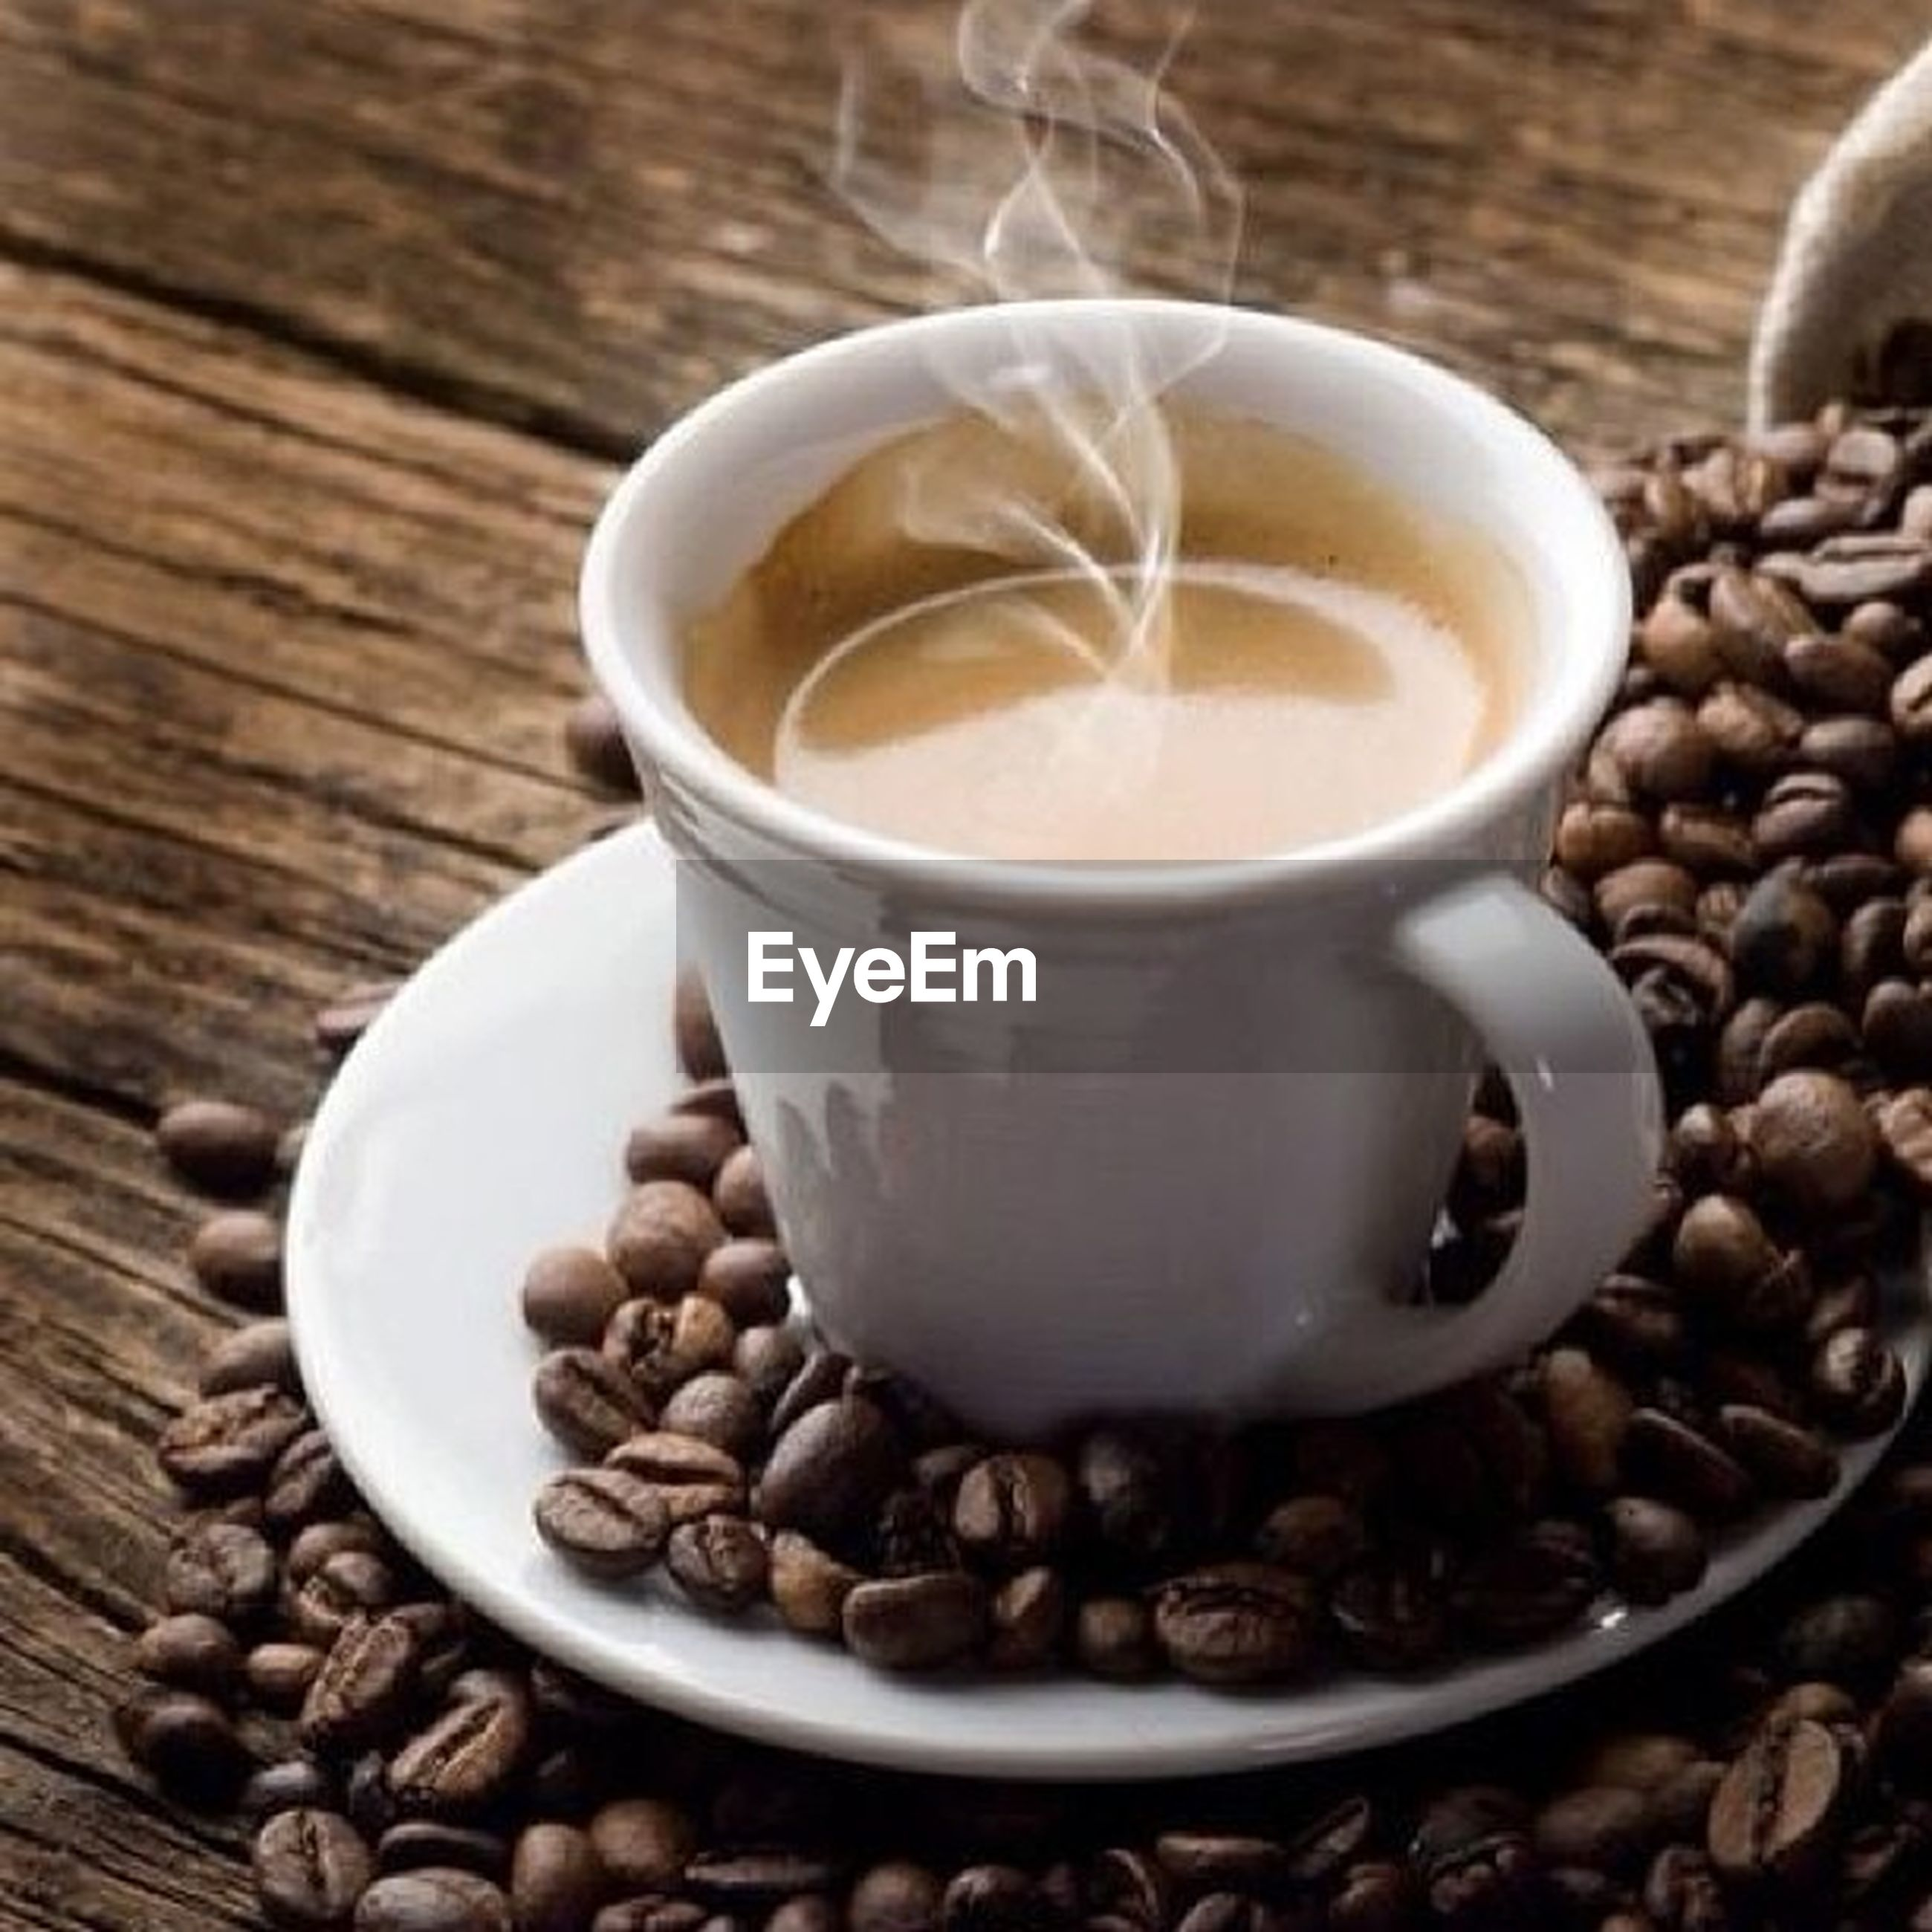 food and drink, drink, refreshment, coffee - drink, coffee cup, freshness, saucer, table, indoors, still life, frothy drink, close-up, coffee, cup, cappuccino, healthy eating, spoon, high angle view, wood - material, selective focus